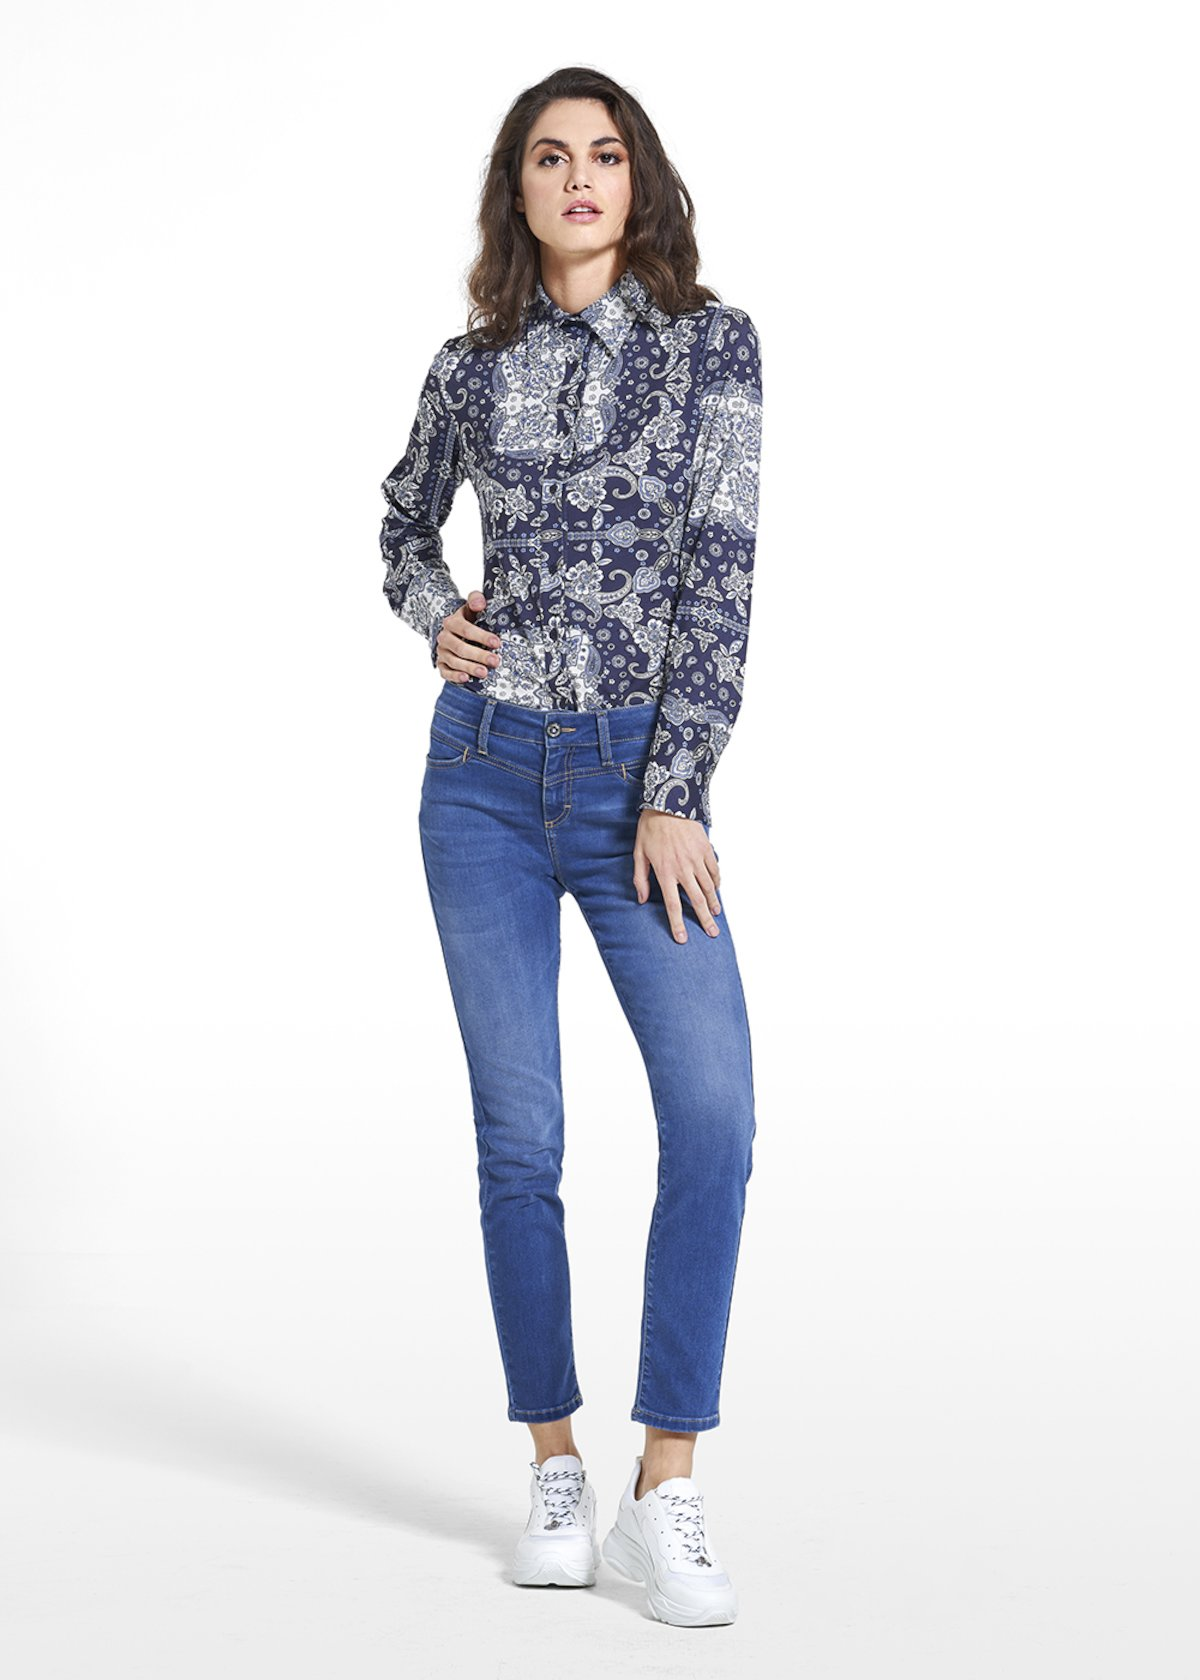 Blouse Carina in jersey patterned paisley bandana